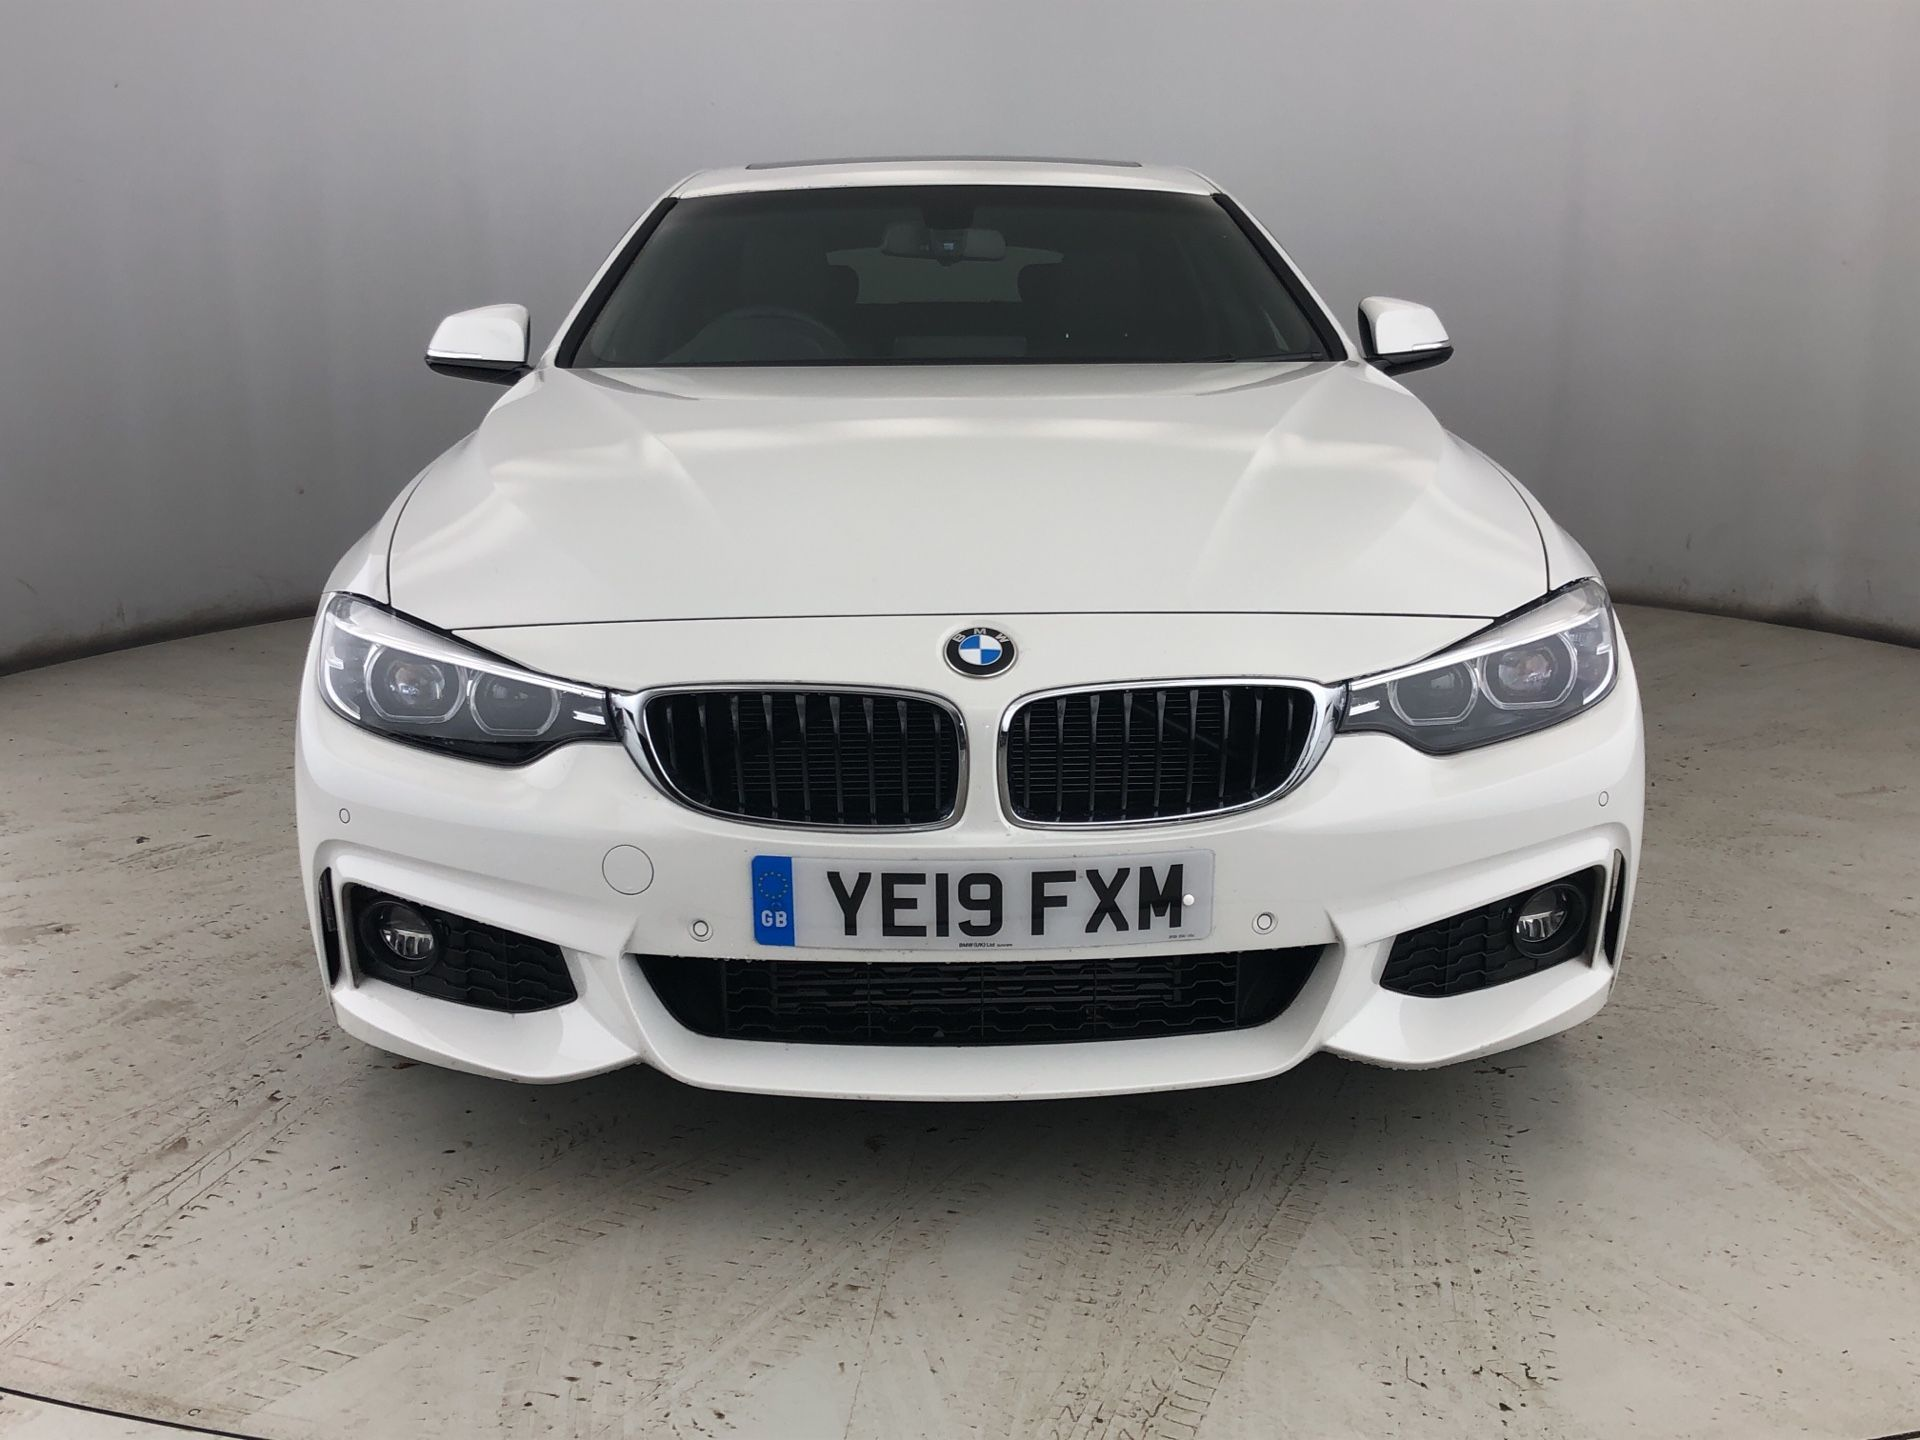 Image 15 - BMW 420d M Sport Gran Coupe (YE19FXM)